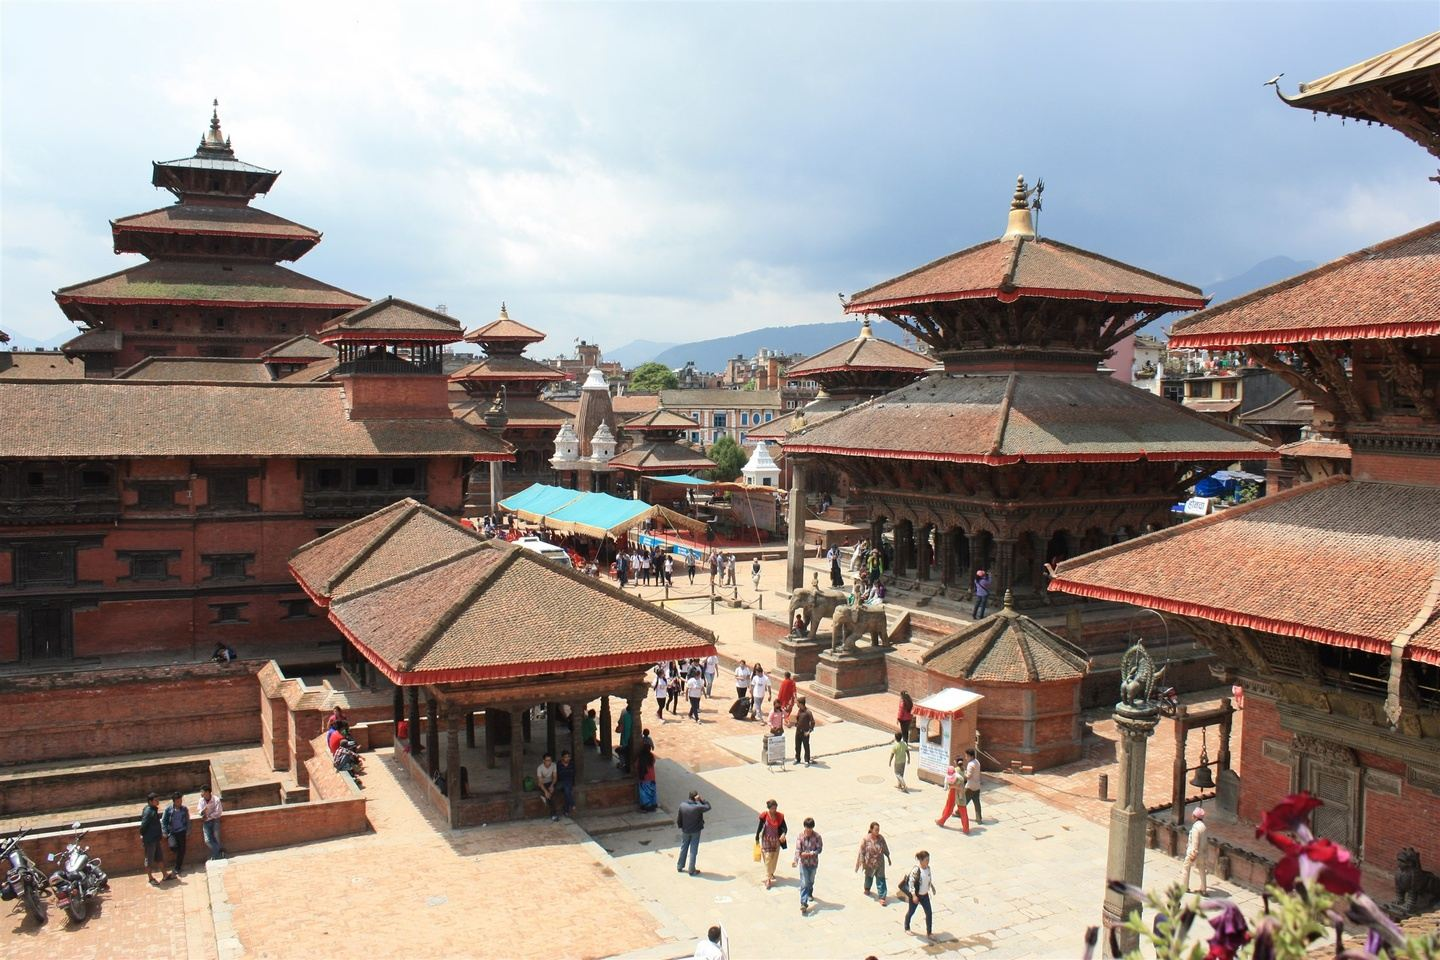 The Best of Nepal